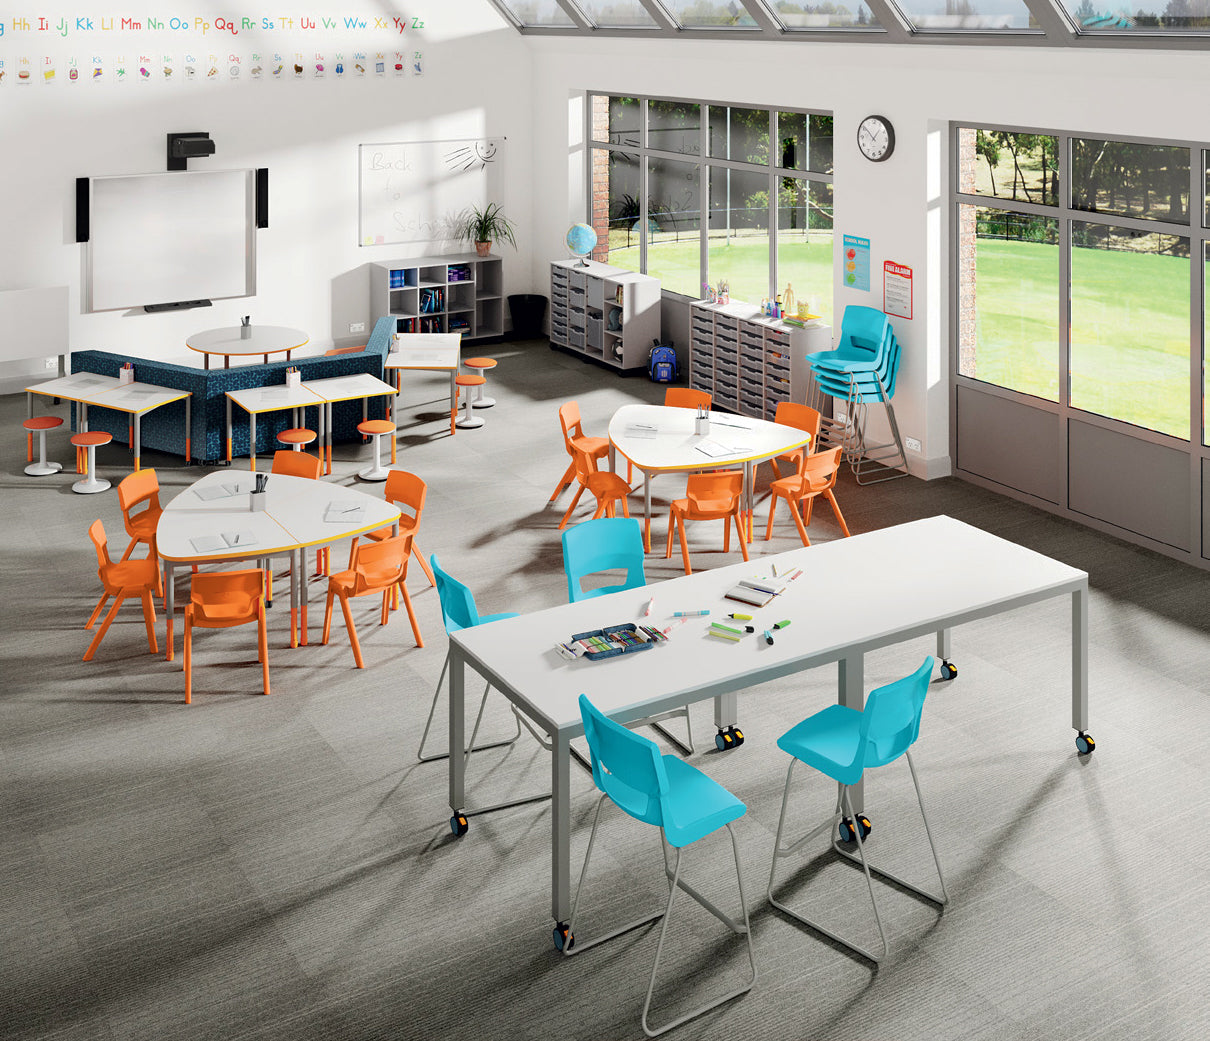 Sebel Tik Tok Stool Education Seating